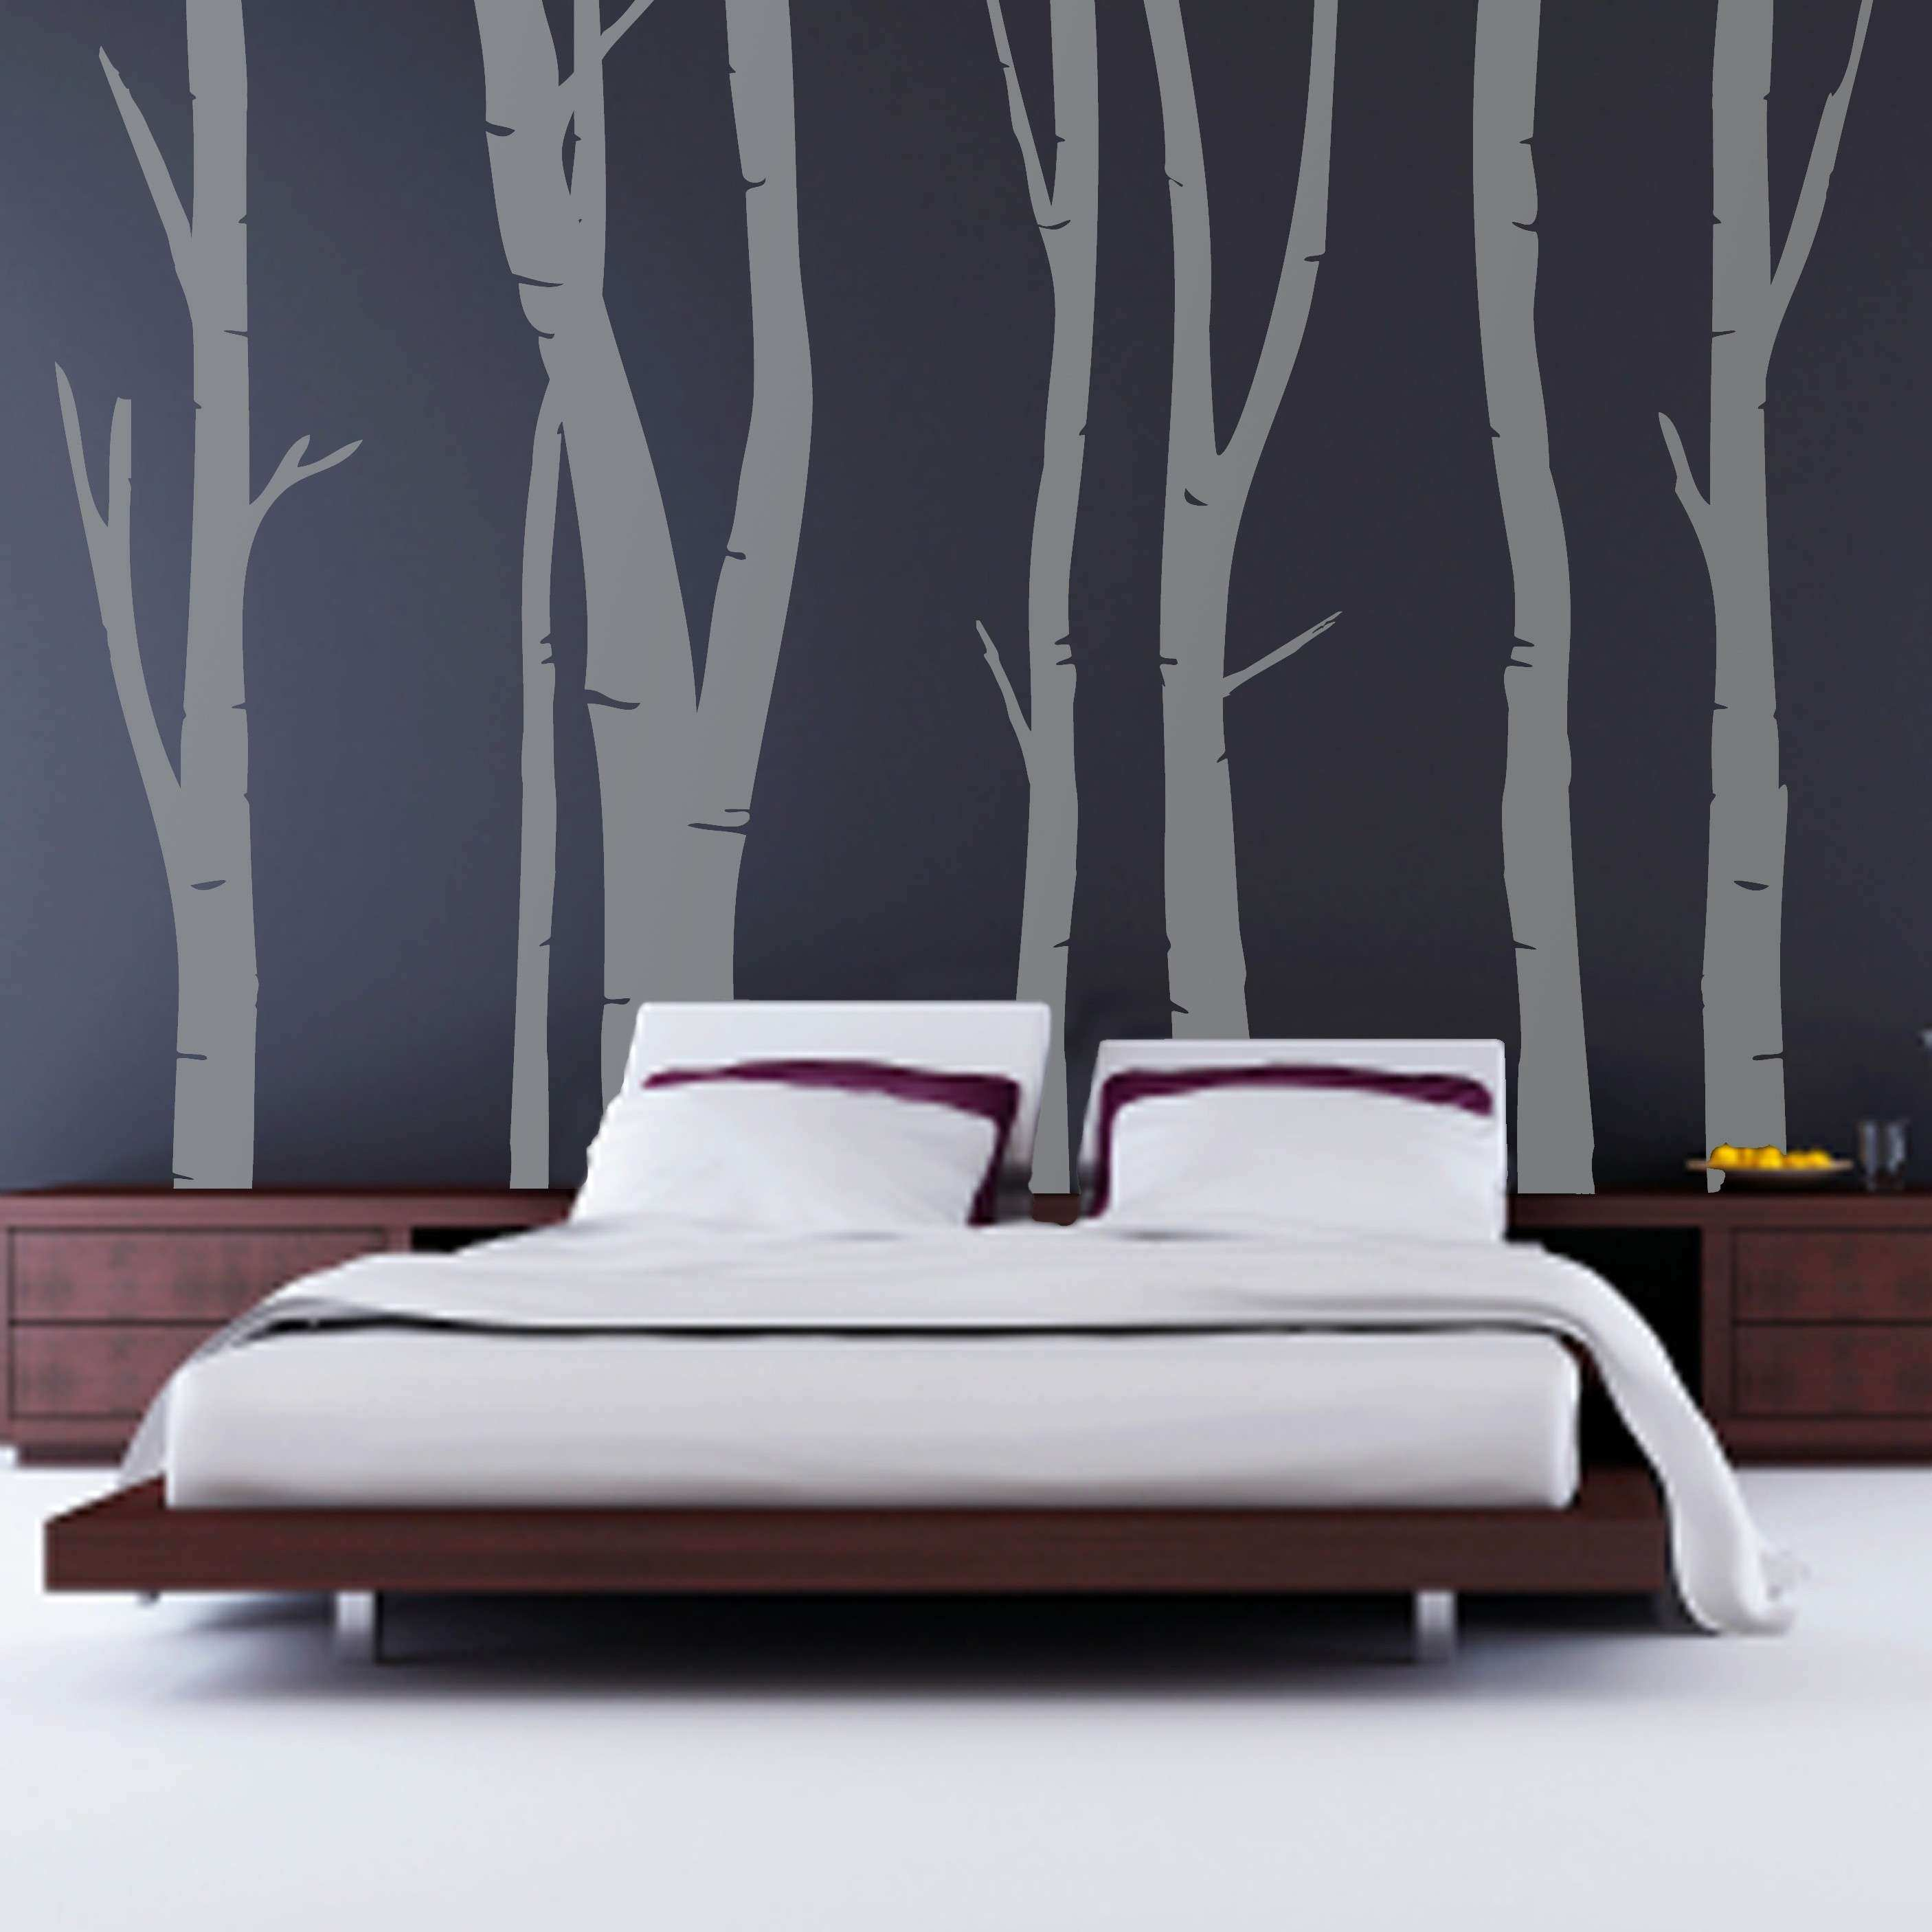 Cheap Bedroom Decorating Ideas Unique Wall Decals for